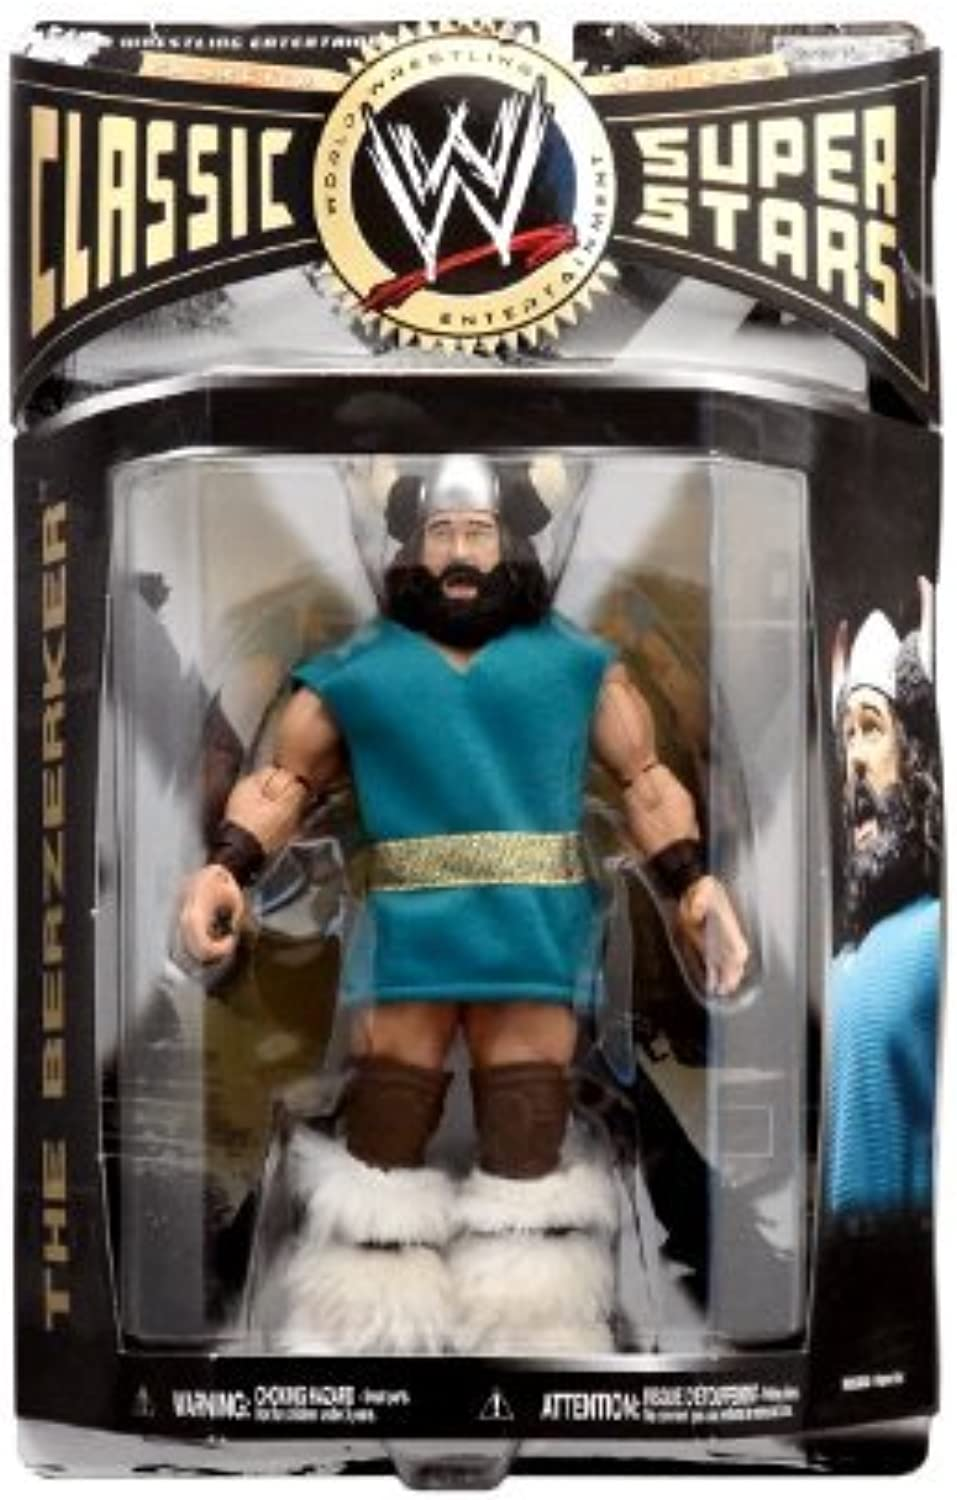 WWE Wrestling Classic Superstars Series 23 Action Figure Berzerker by Jakks Pacific by Jakks Pacific